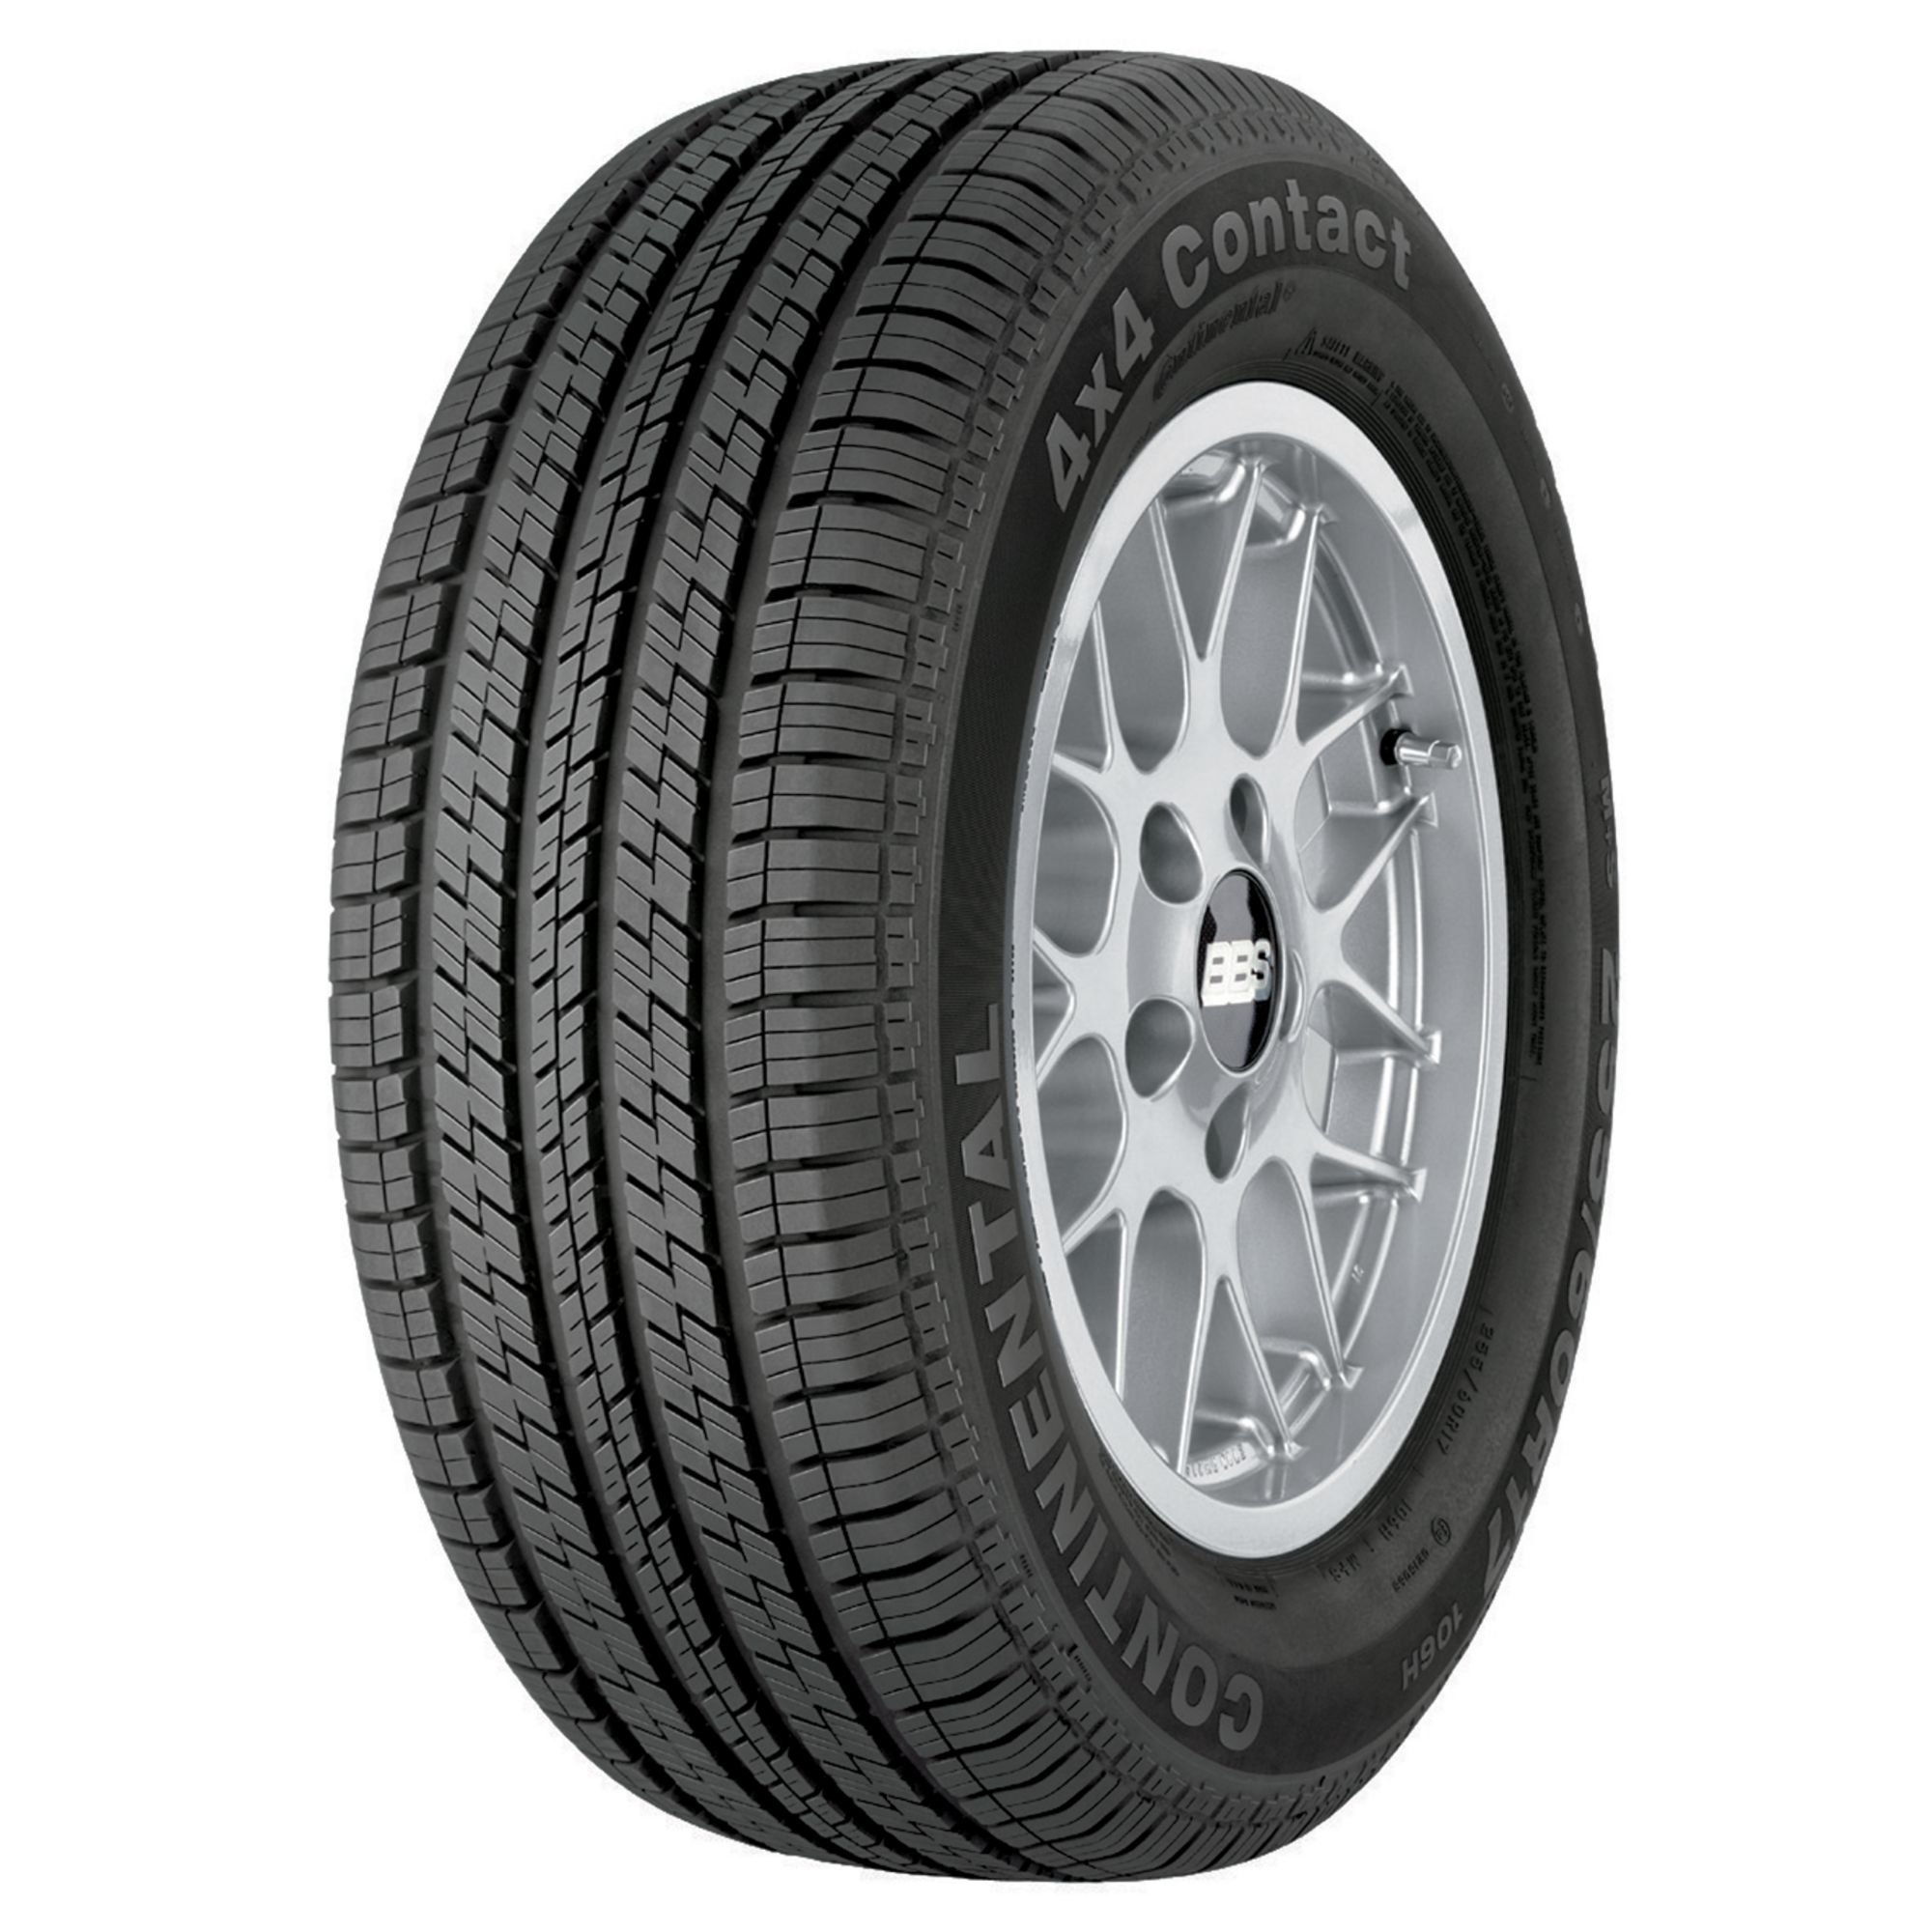 Continental 4x4 Contact 255/50R19